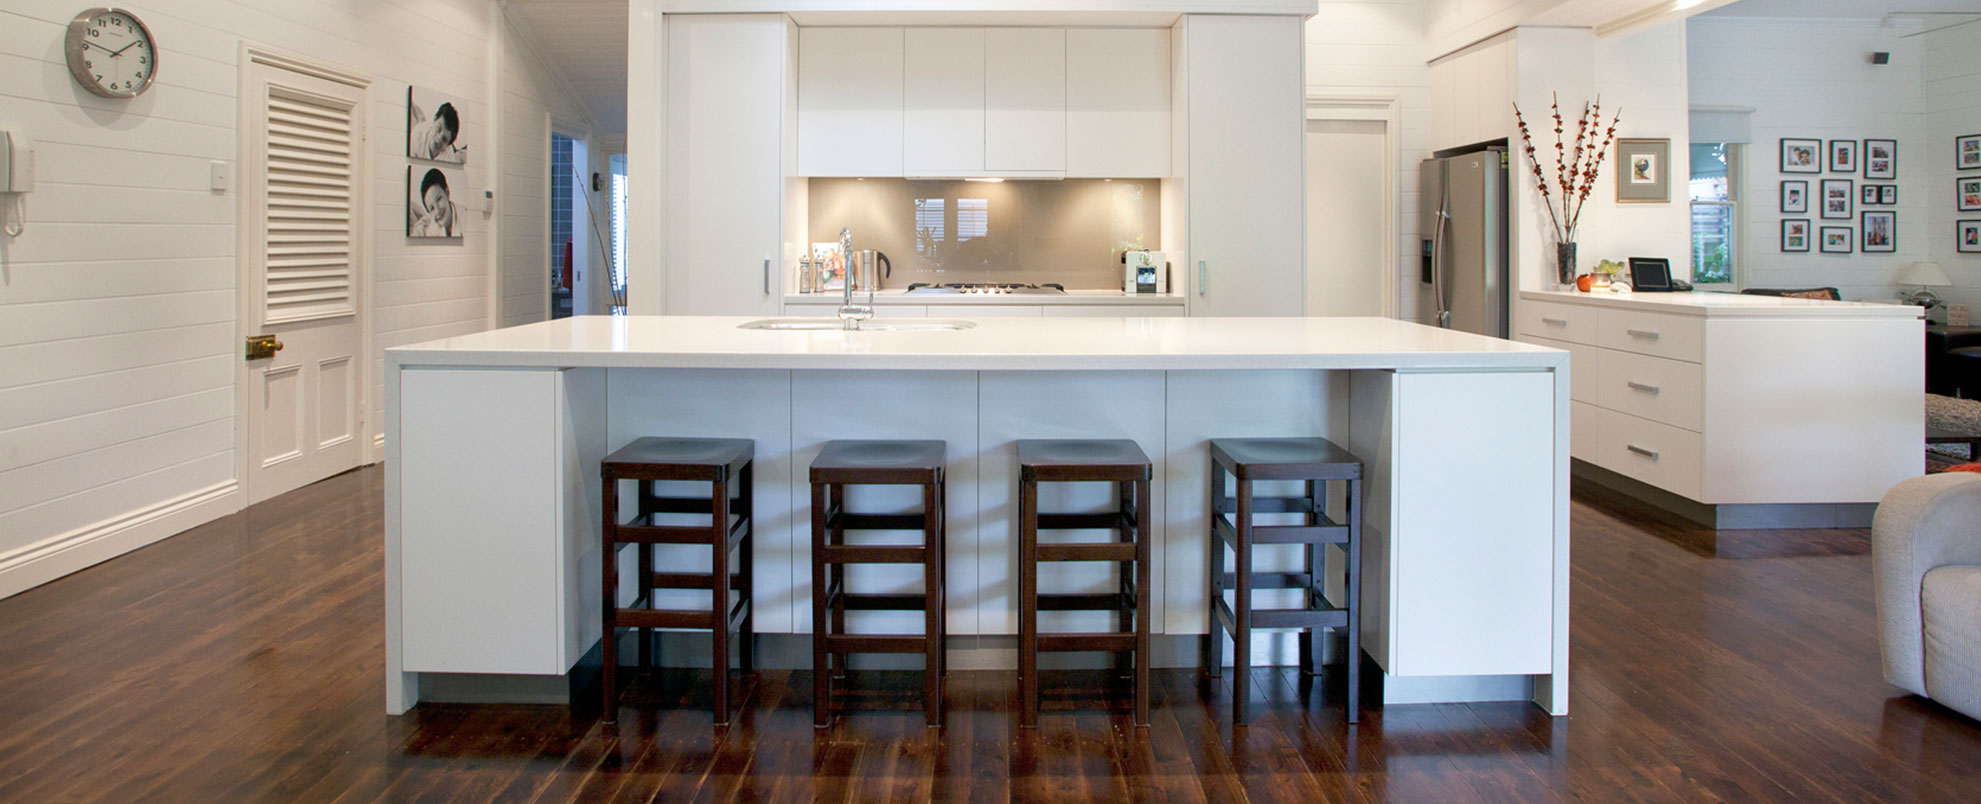 Custom made joinery brisbane interior joinery custom for Kitchen ideas brisbane